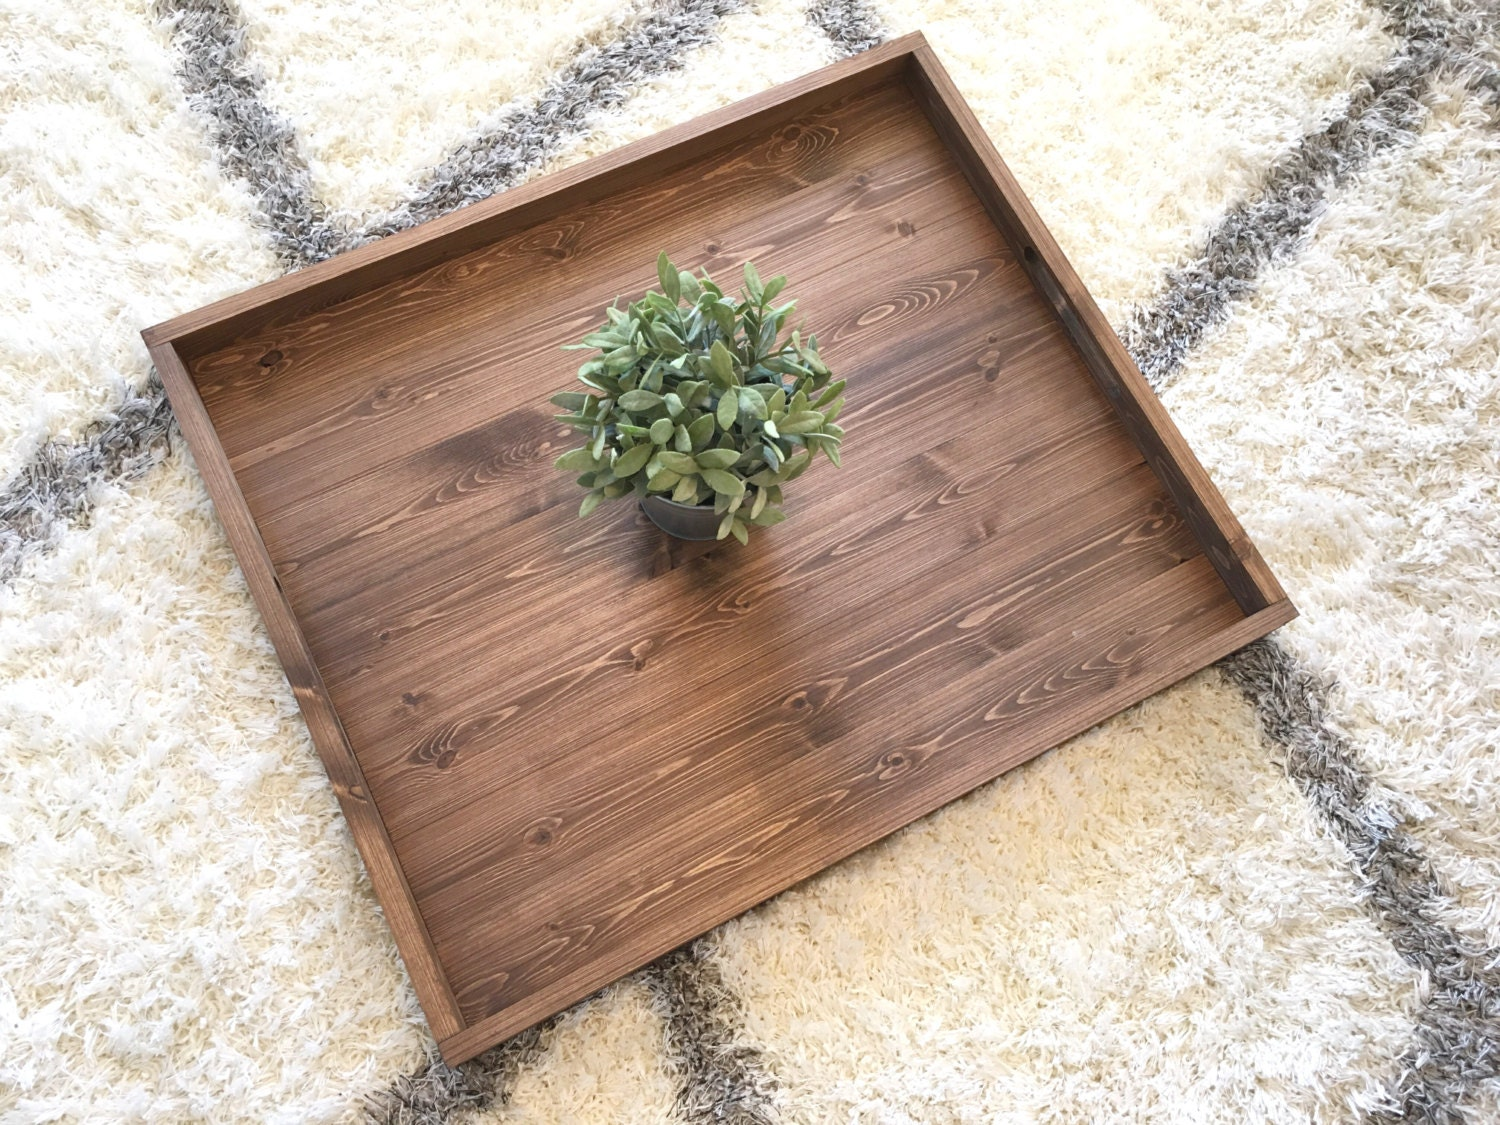 Rustic Wooden Ottoman Tray Ottoman Tray Wooden Tray Rustic